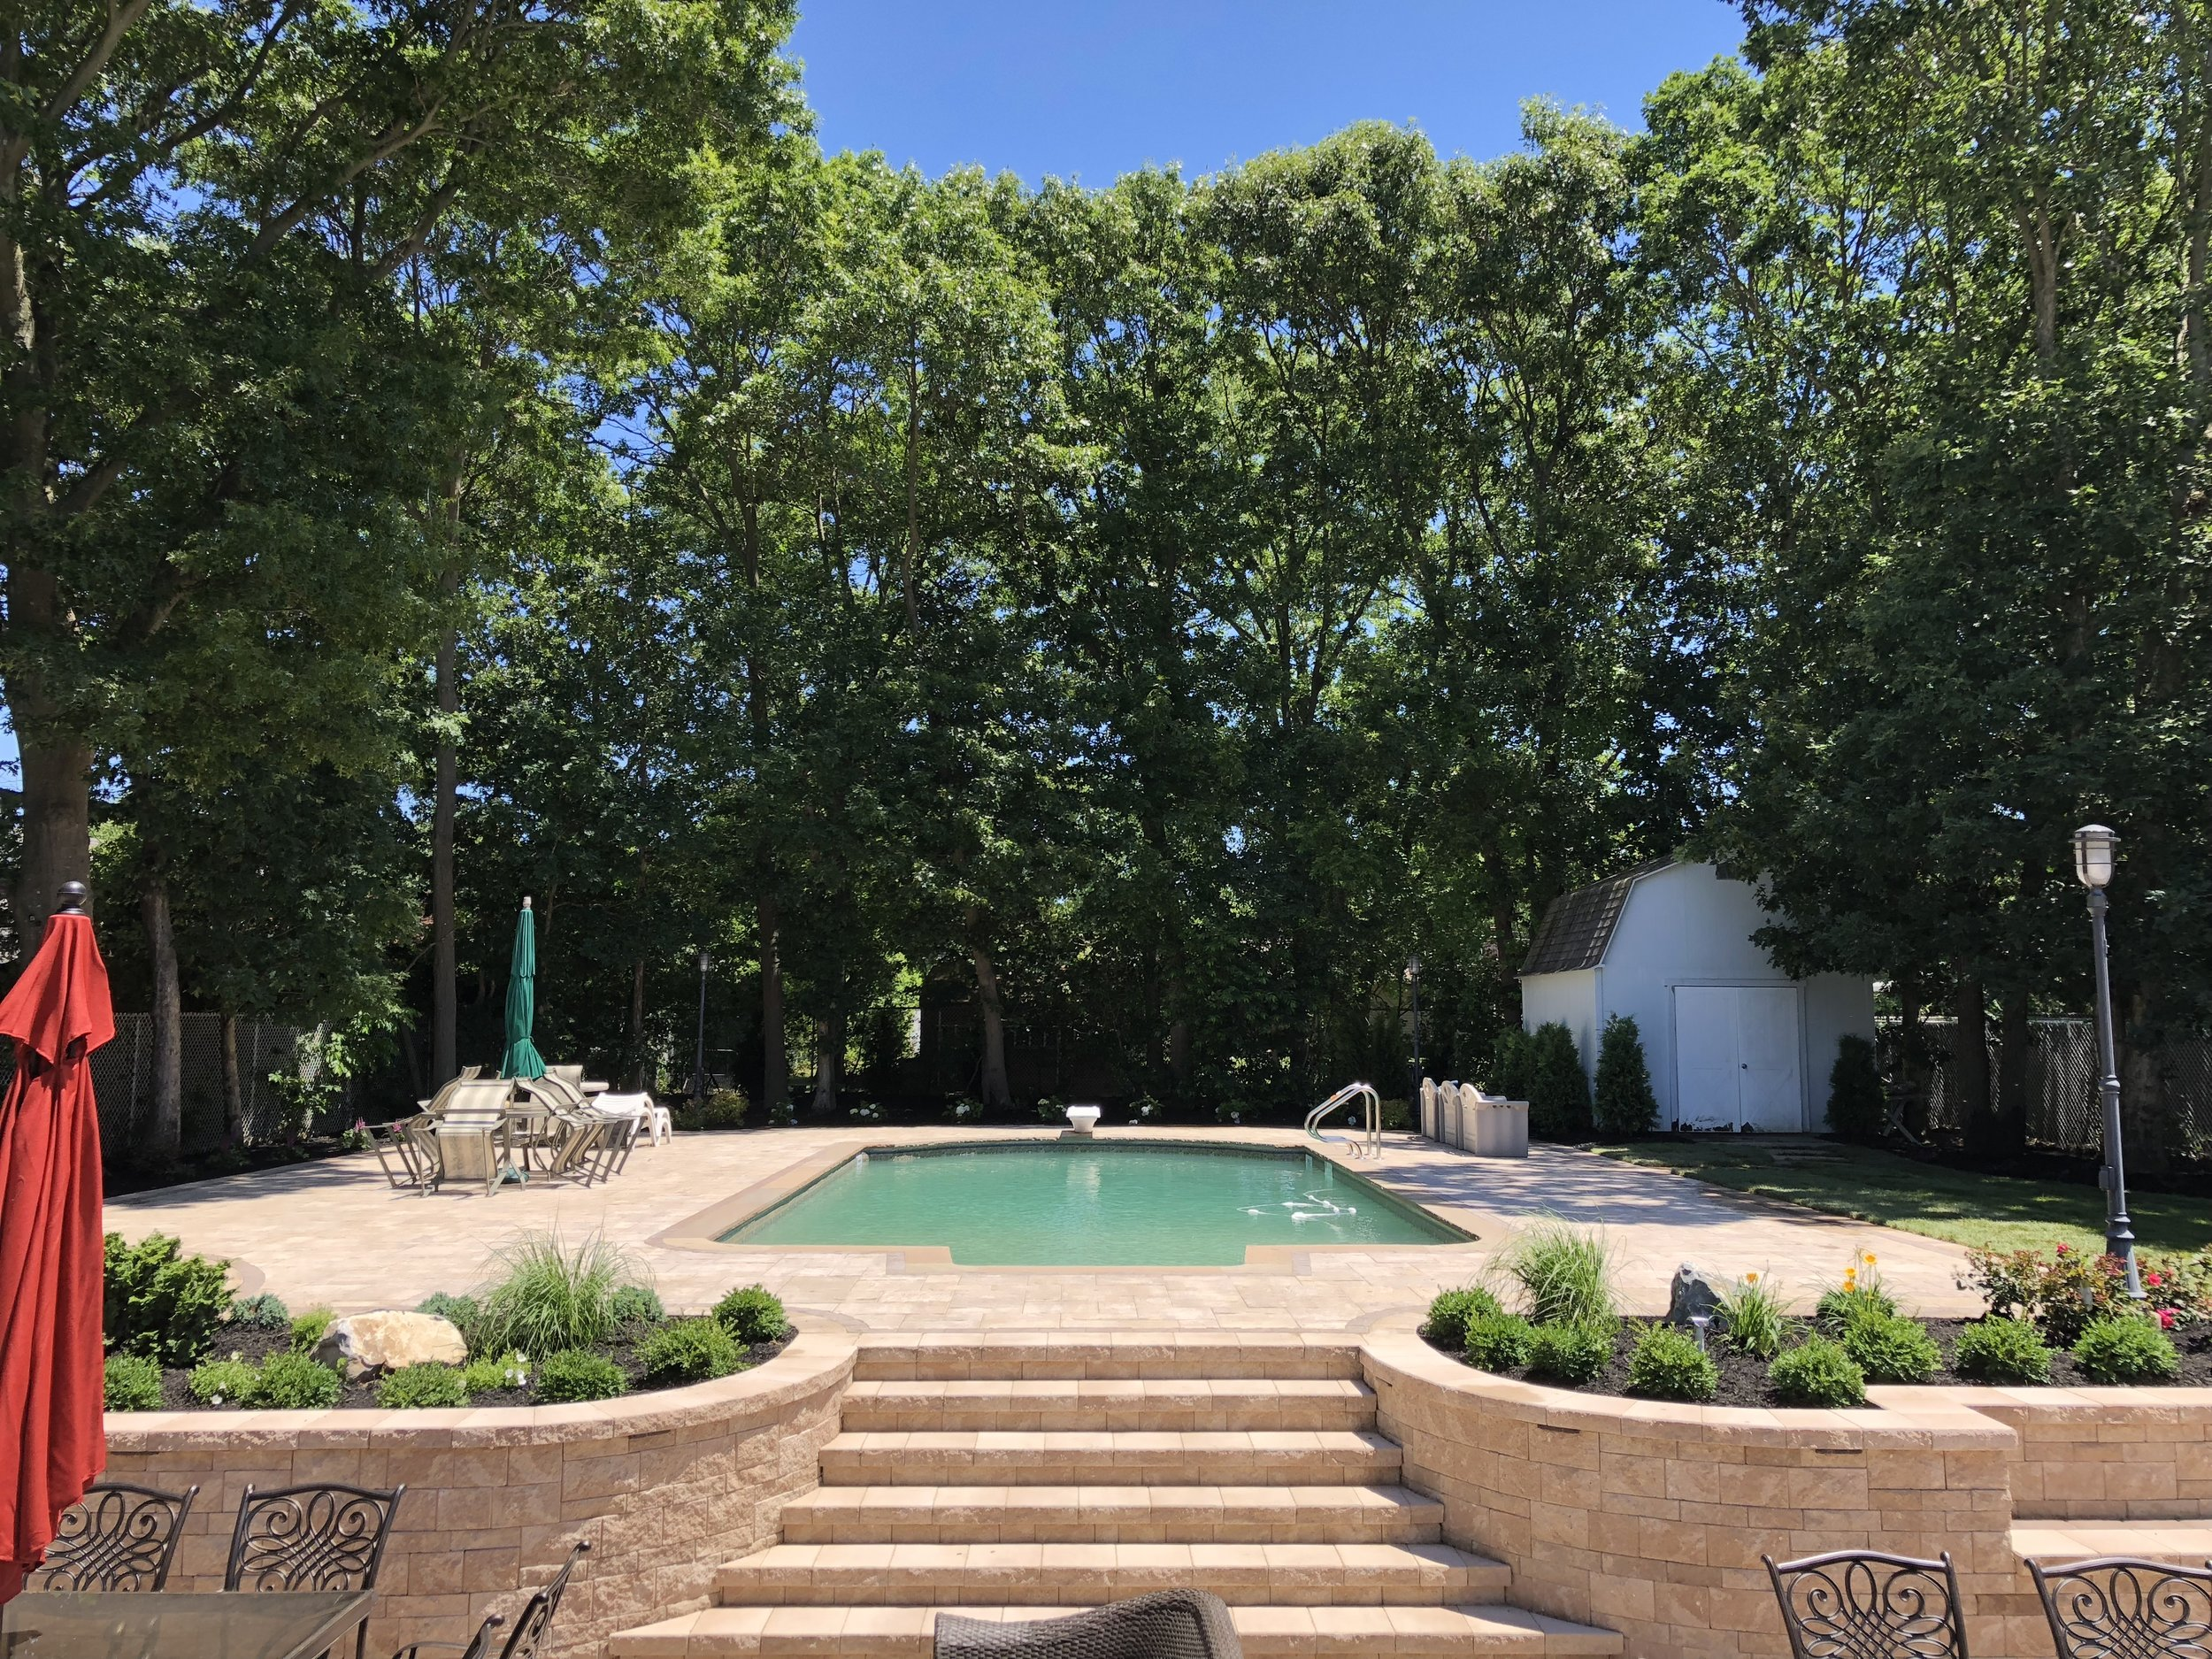 17 Landscape Architecture Ideas for a Perfect Swimming Pool Area in Plainview, NY